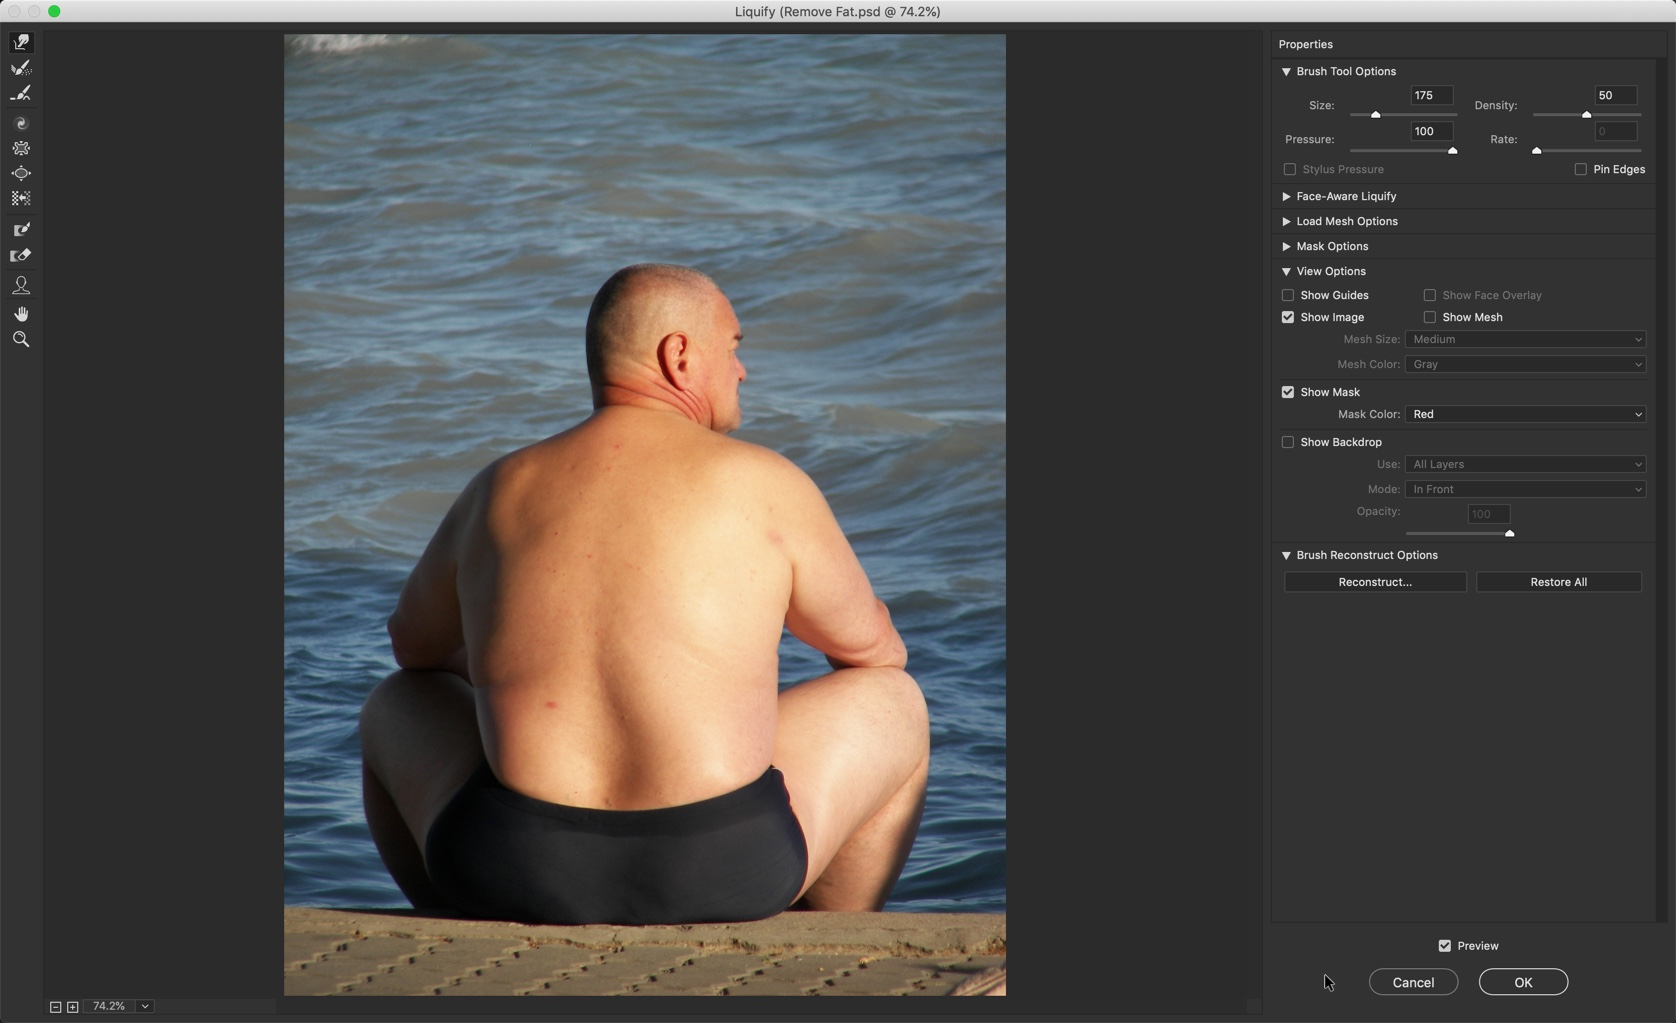 7-2 - The Ultimate Guide to Remove Fat in Photoshop